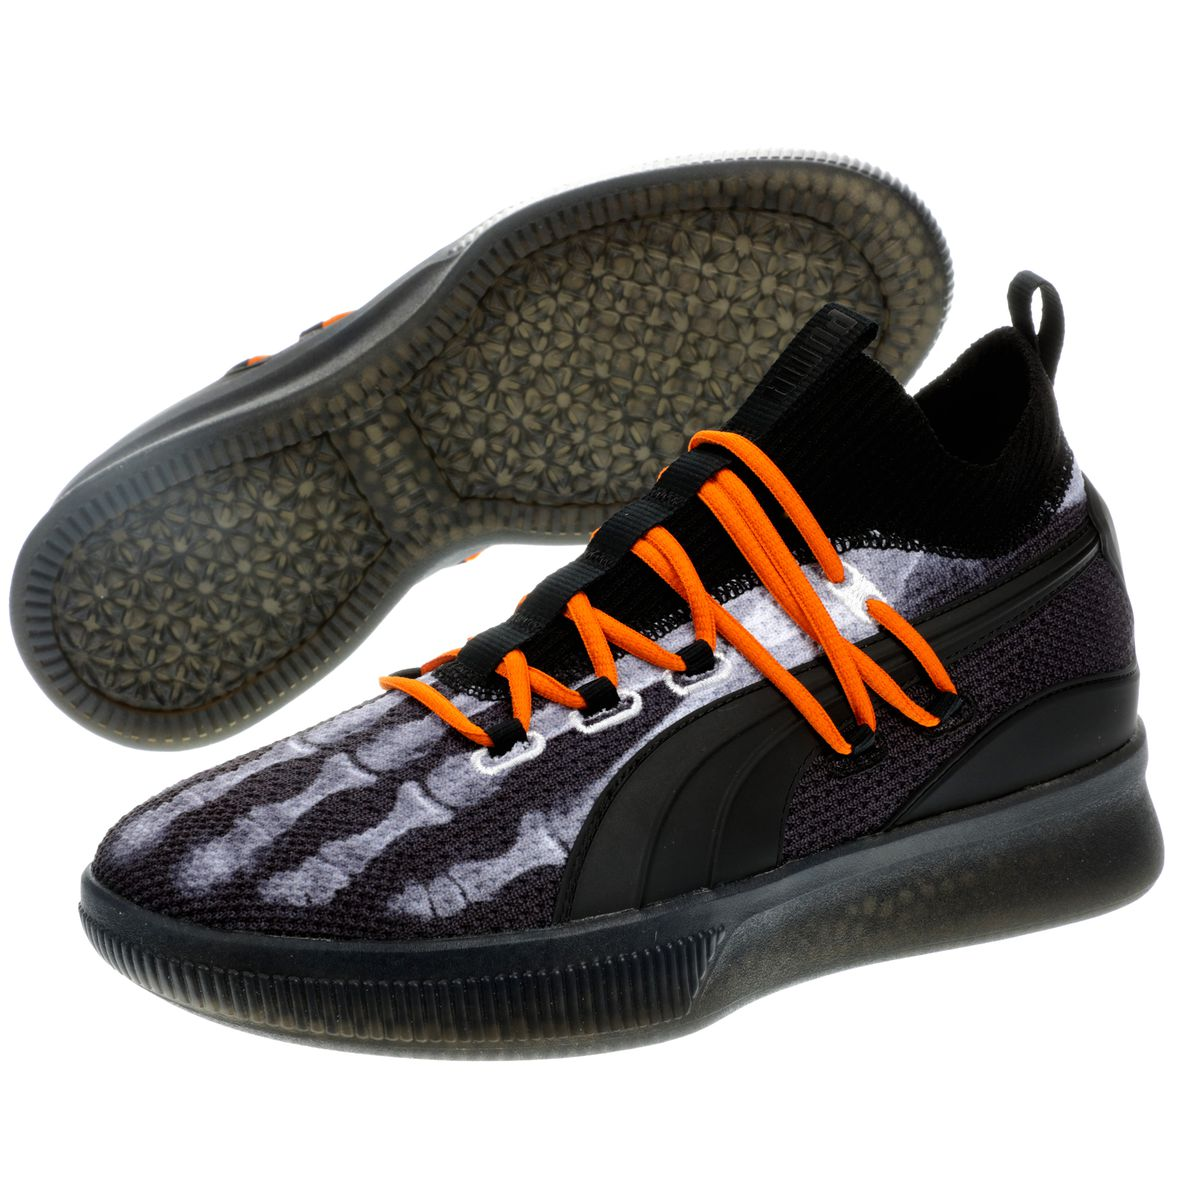 335175efa49 Puma s second colorway is the Halloween-themed Clyde Court X-Ray ...